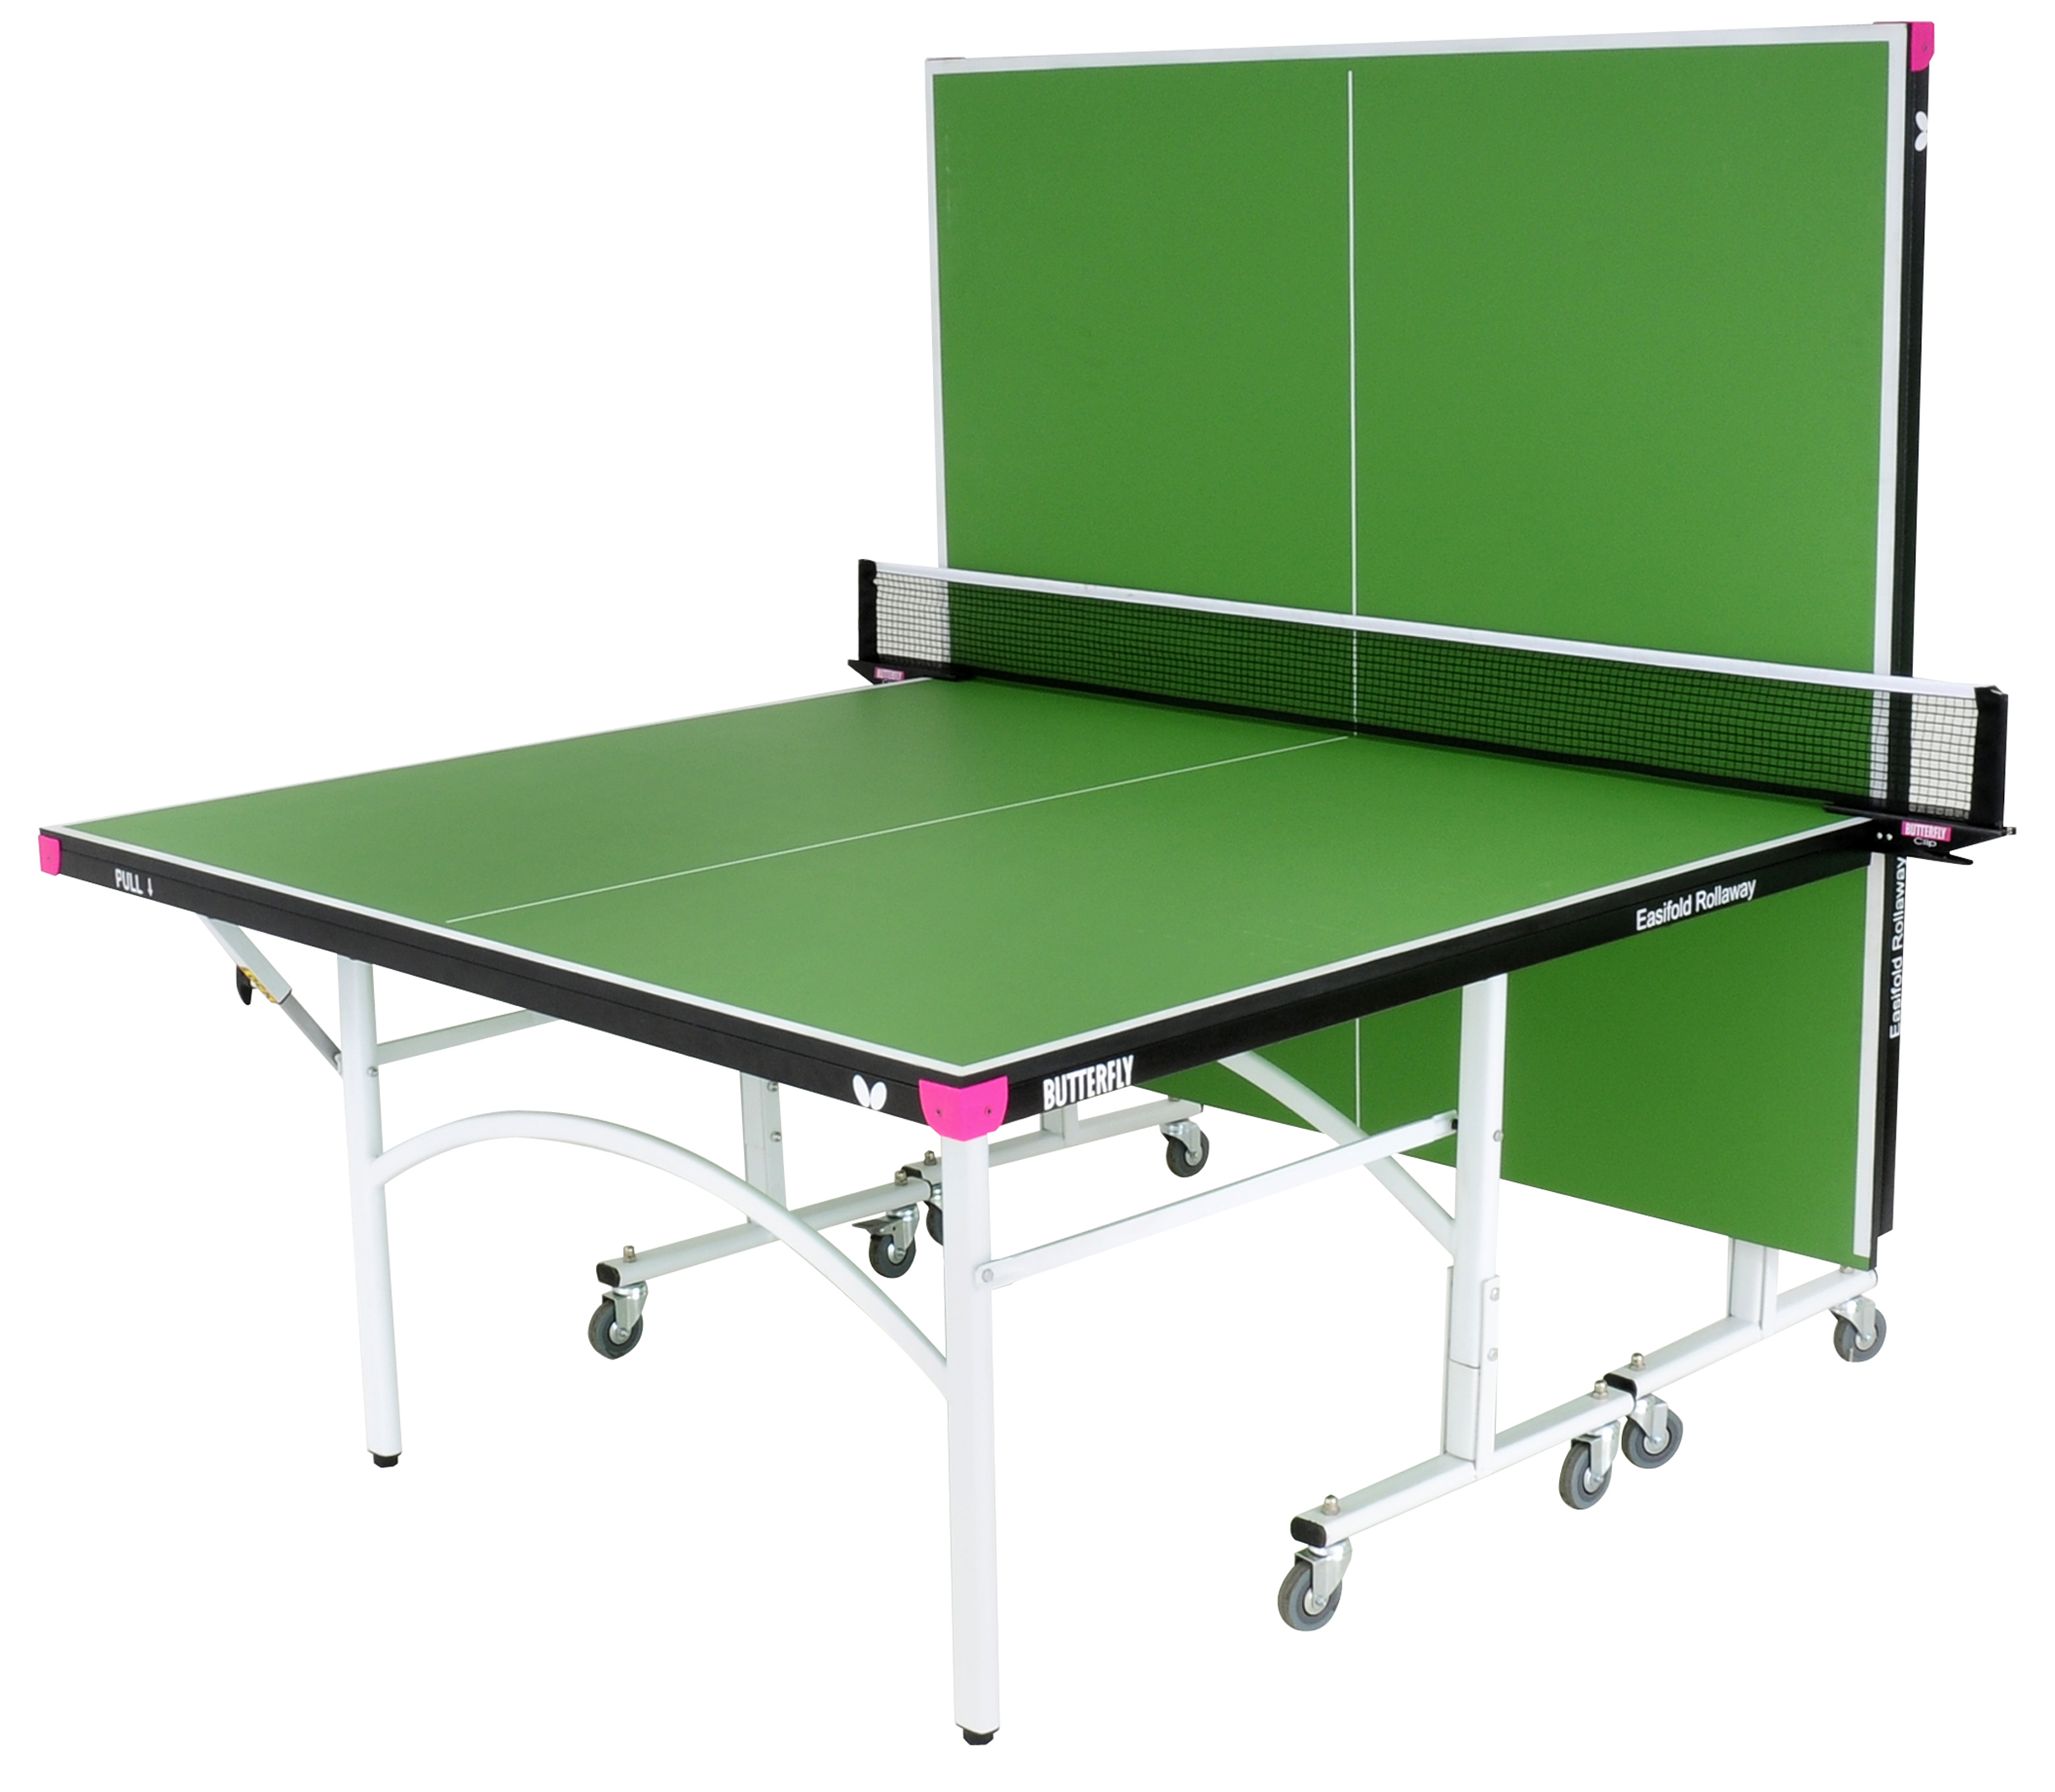 Butterfly easifold indoor table tennis table green ok - Butterfly table tennis official website ...